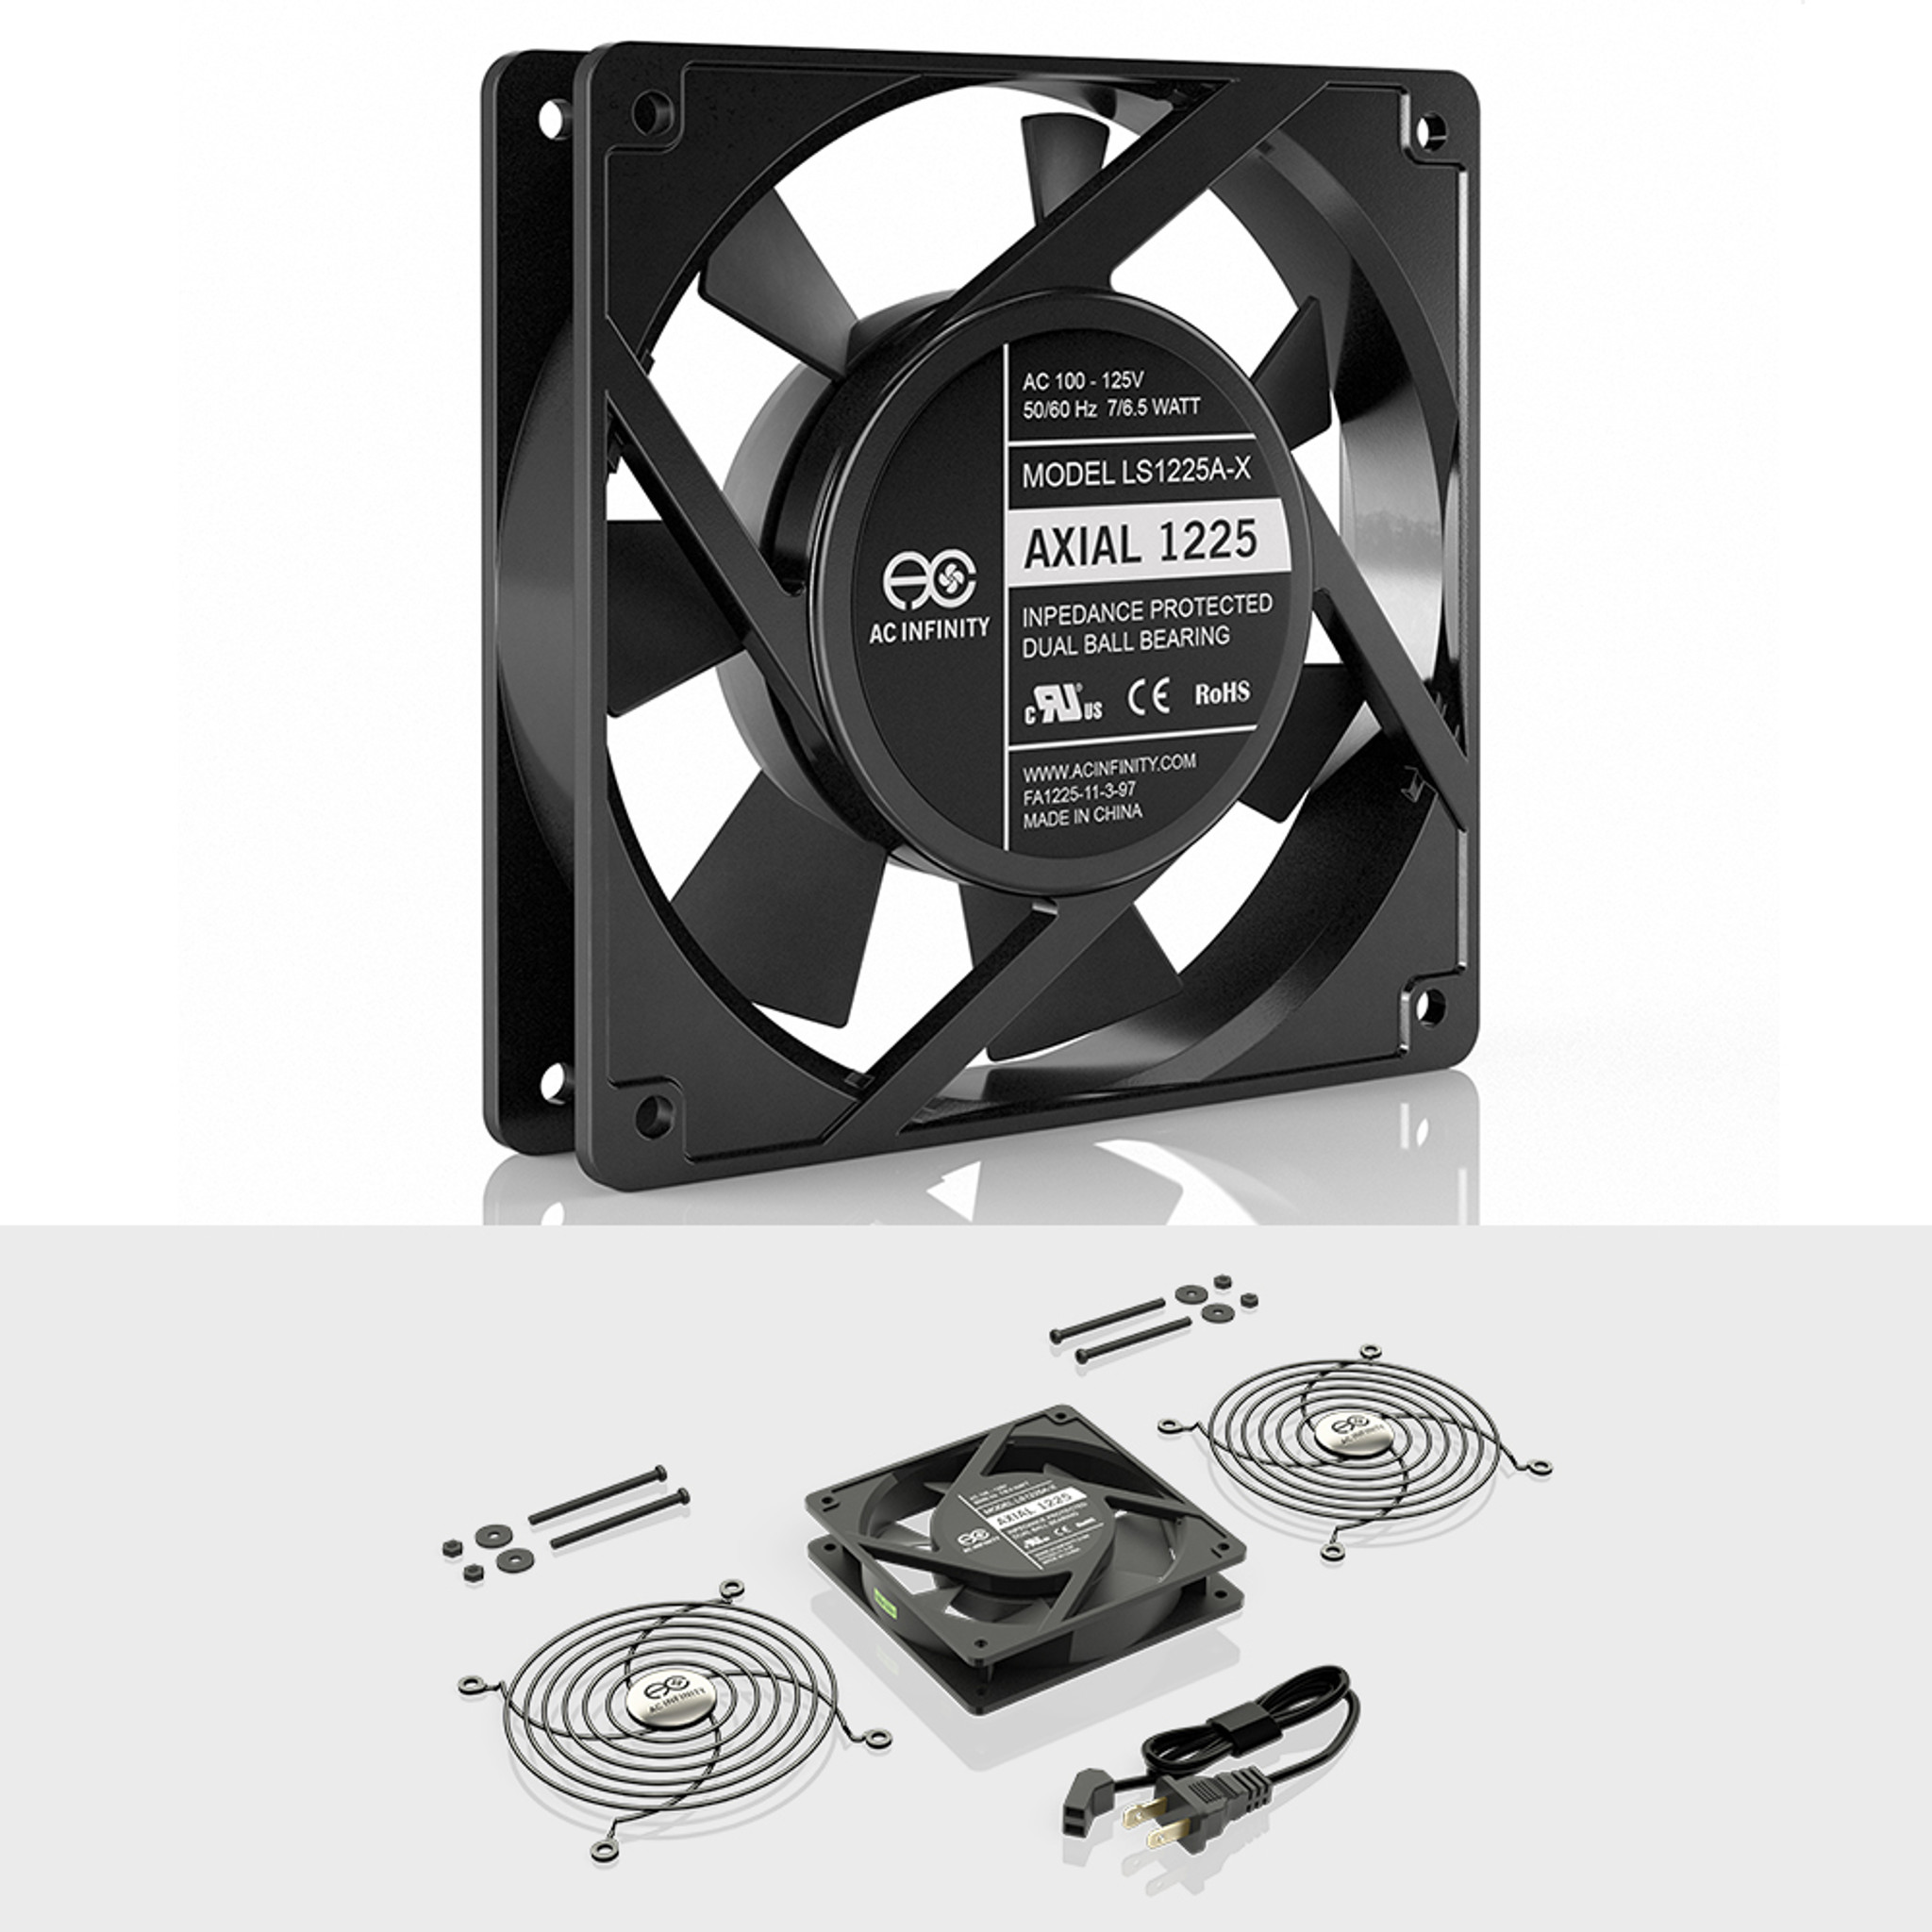 115V 120V AC 120mm x 25mm Low Speed, AC Infinity AXIAL 1225 Quiet Muffin Fan